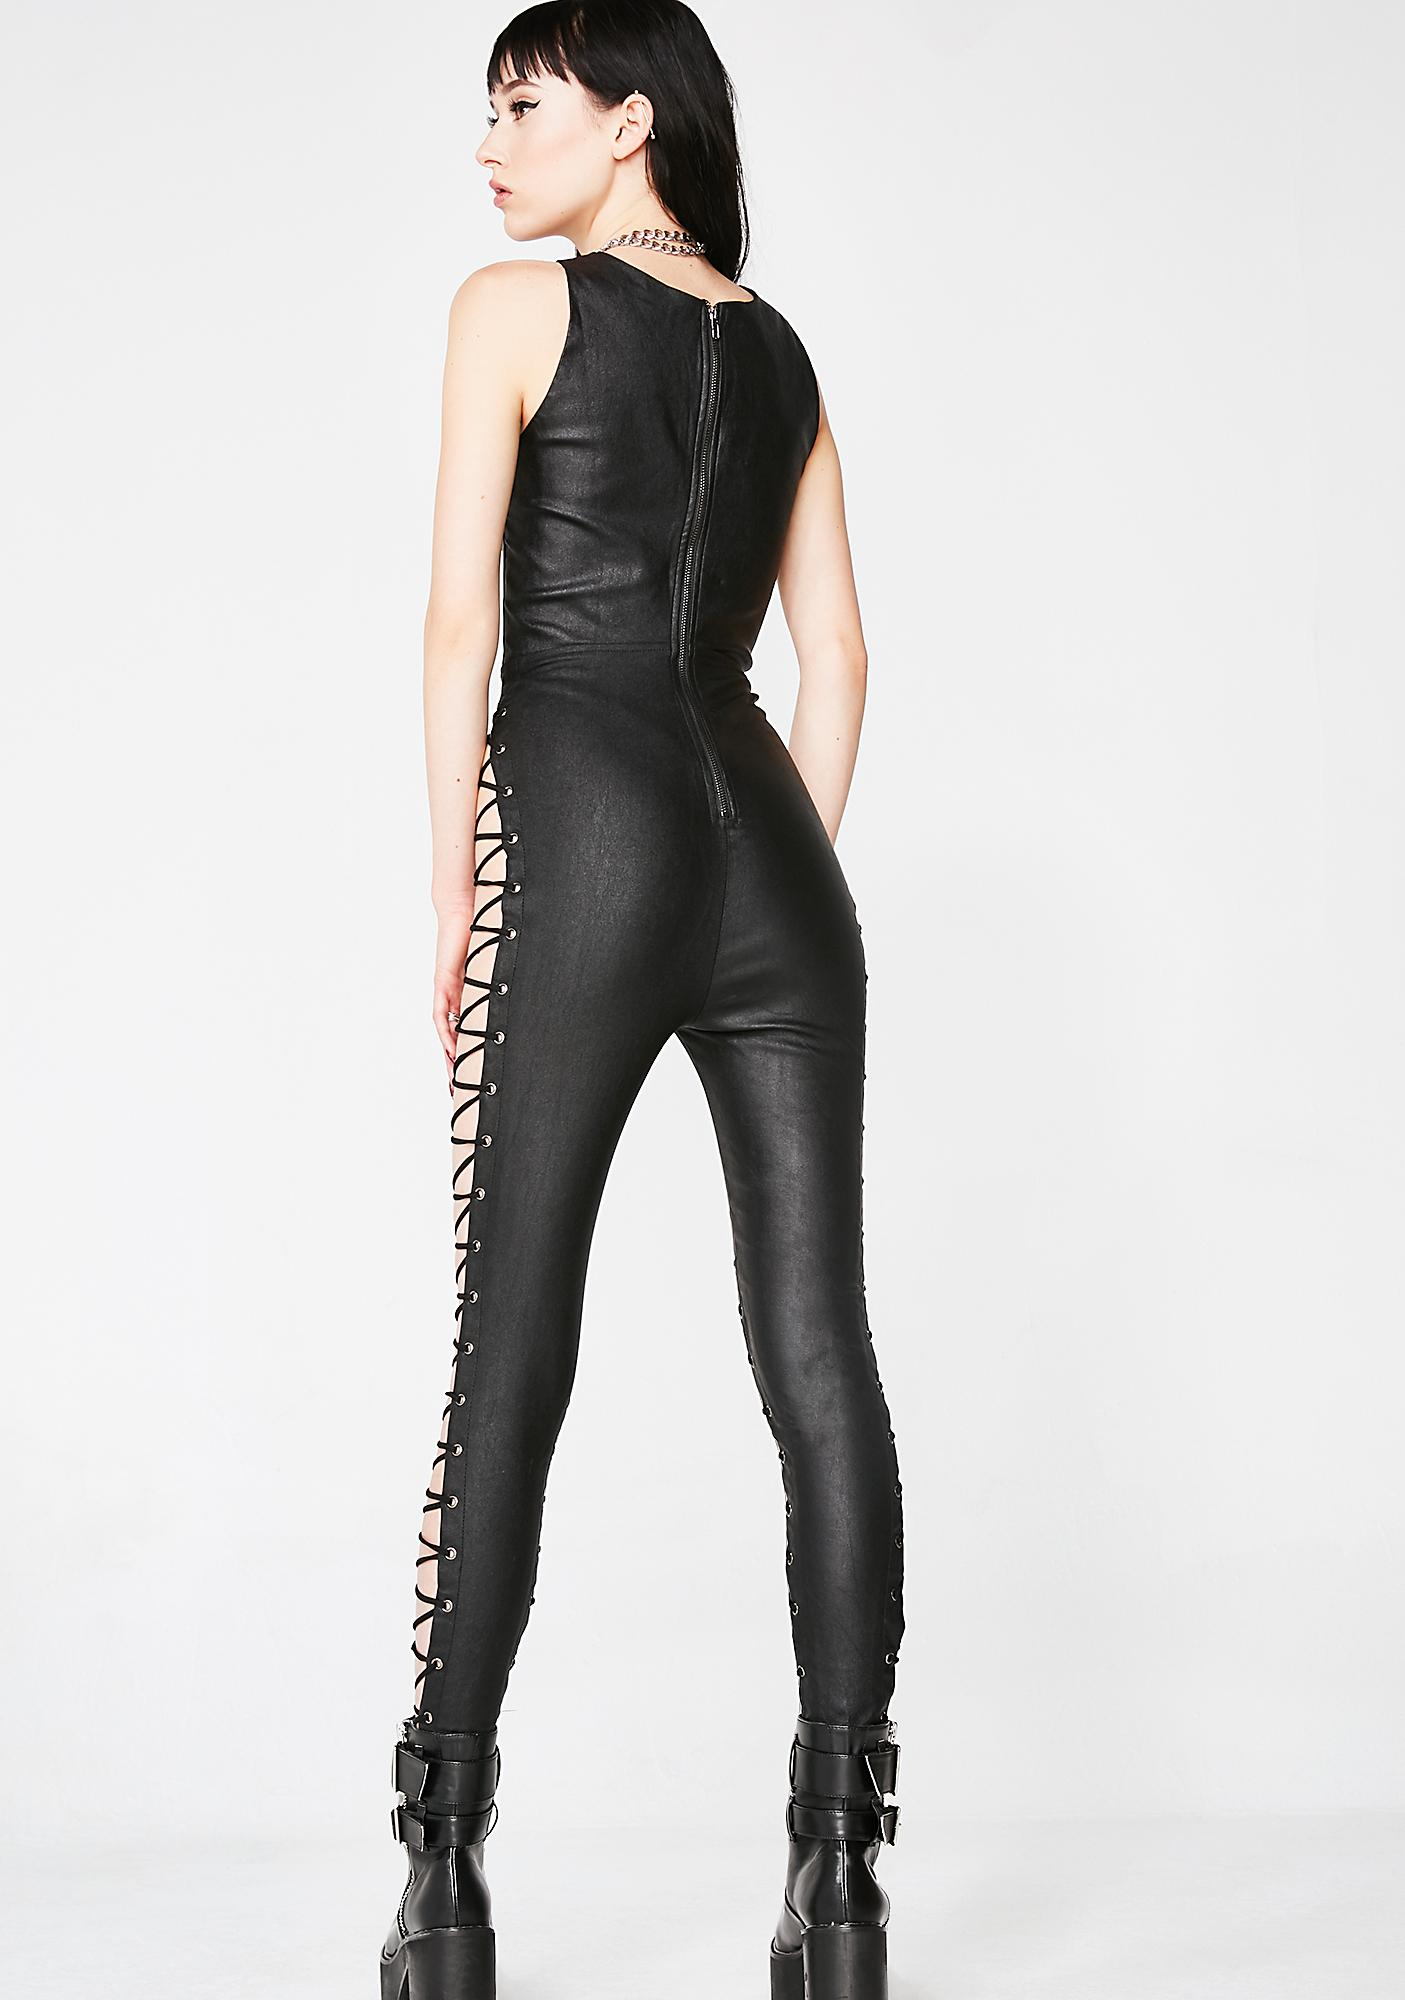 Dark Desire Lace-Up Jumpsuit